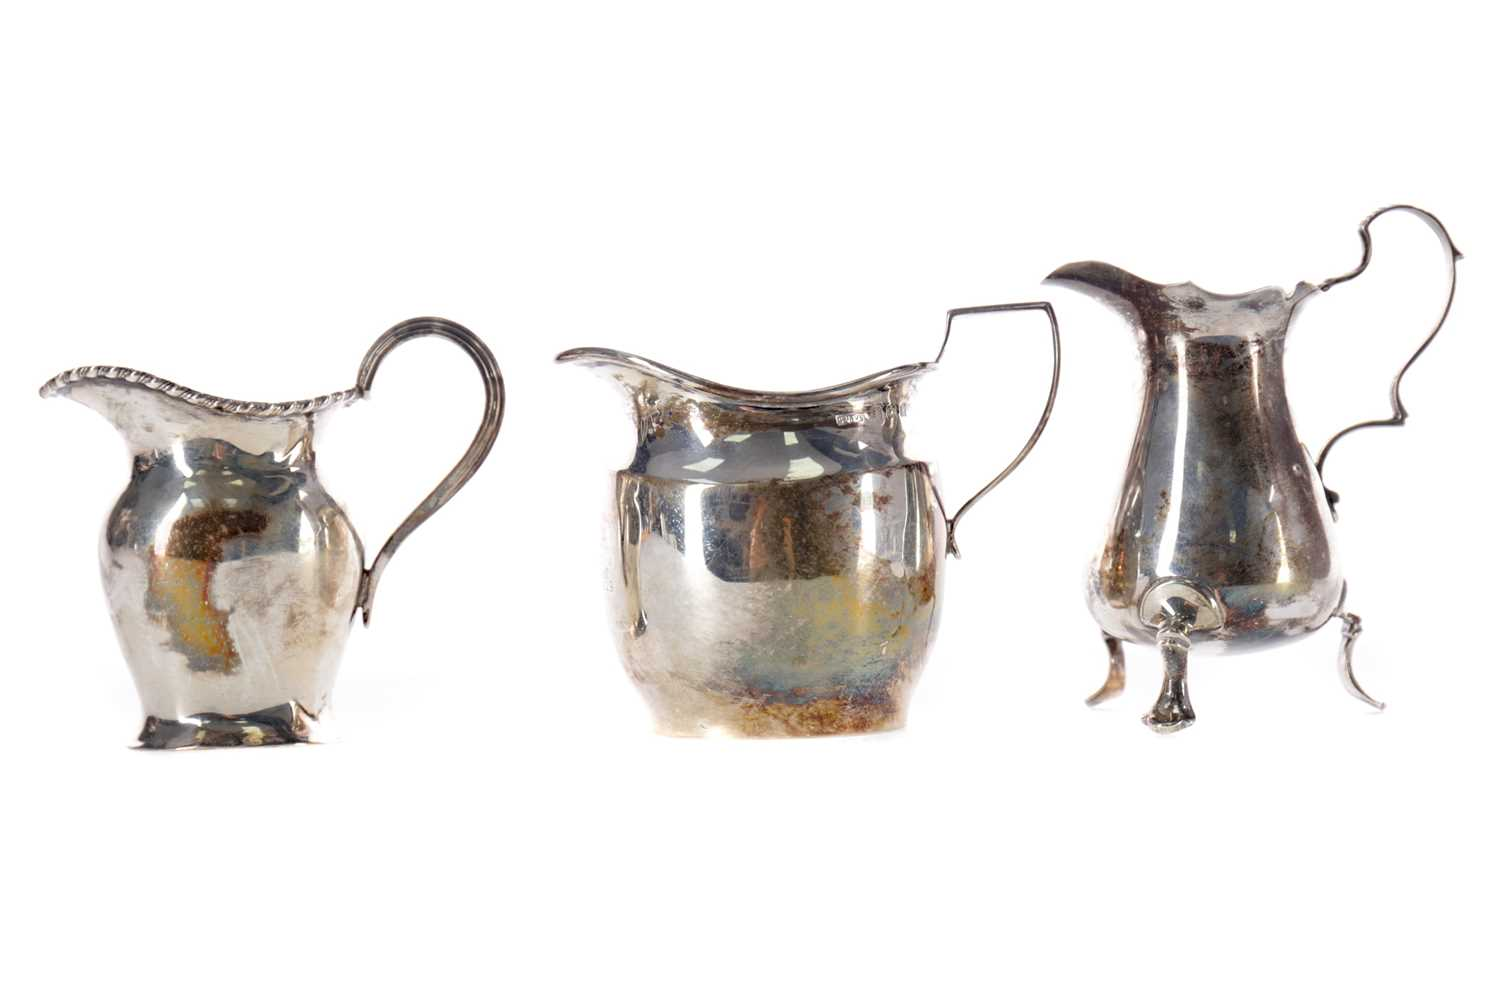 Lot 457 - A GEORGE V SILVER CREAM JUG AND TWO OTHERS